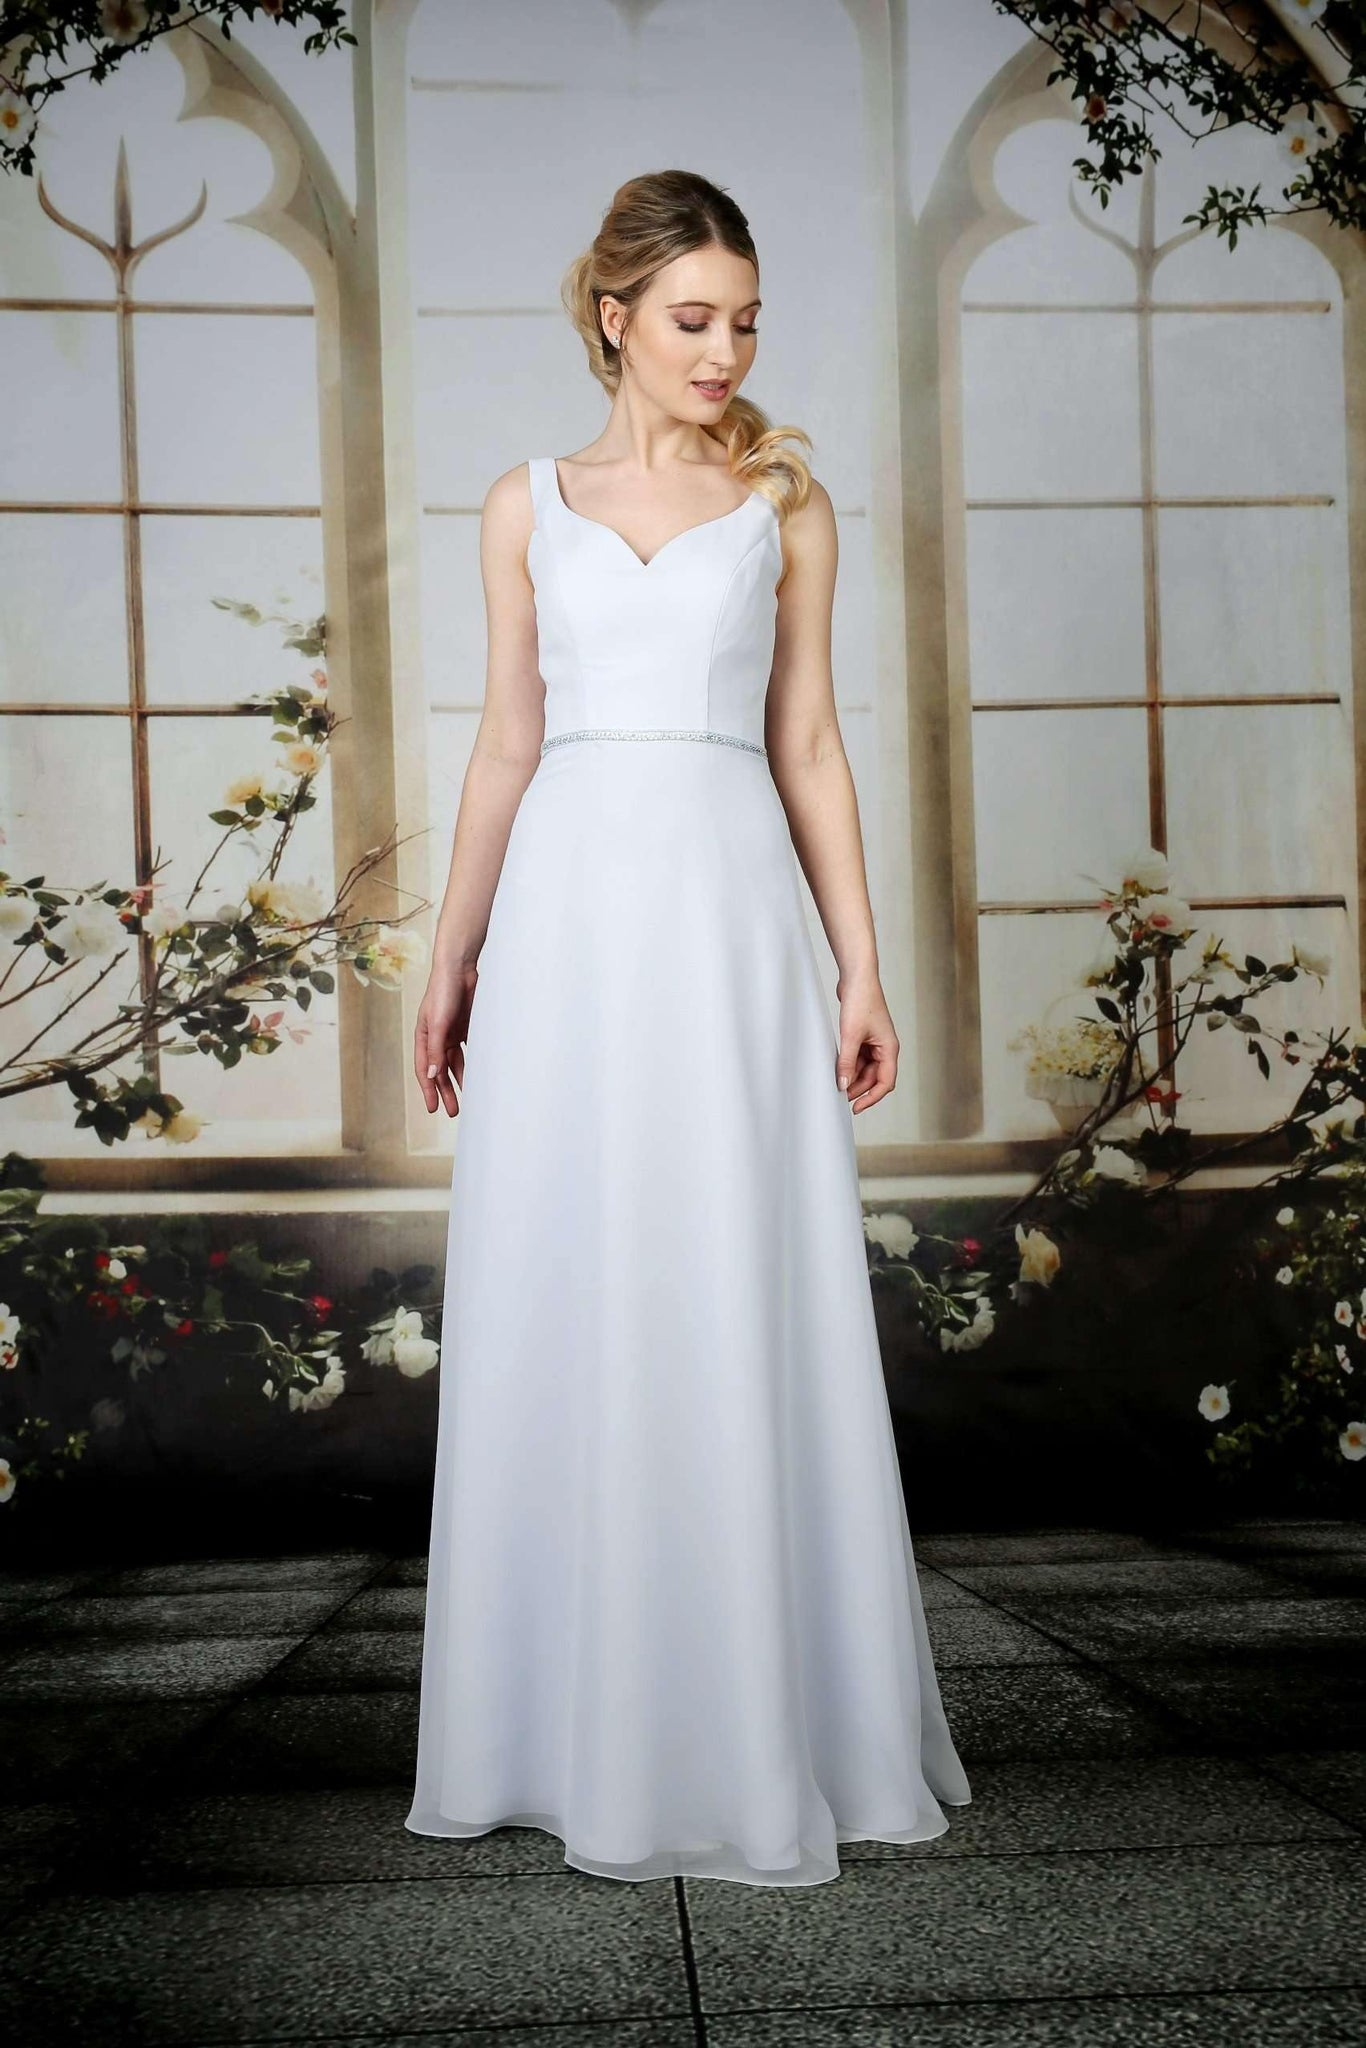 Laura Nieve Occasion - Adore Bridal and Occasion Wear